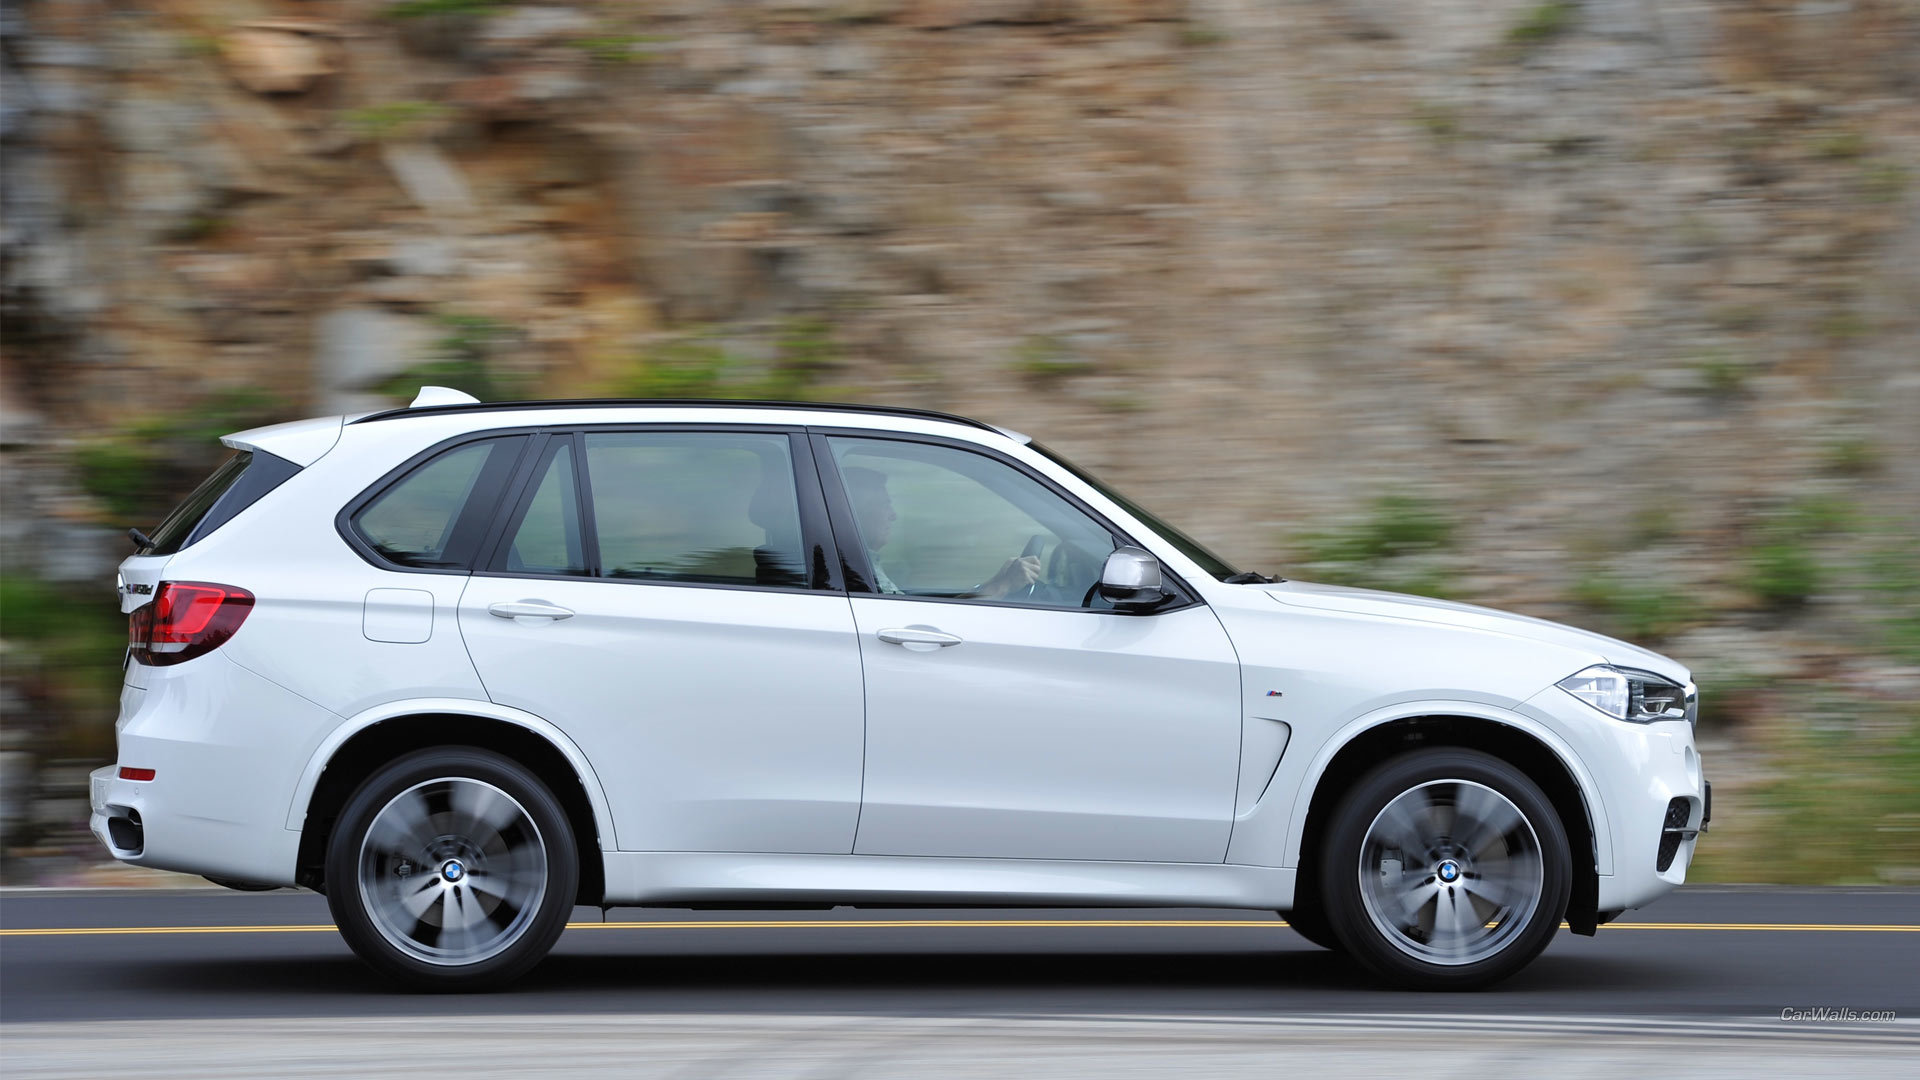 Bmw x5 wallpapers 1920x1080 full hd 1080p desktop backgrounds free download bmw x5 wallpaper id163199 full hd 1920x1080 for pc voltagebd Gallery